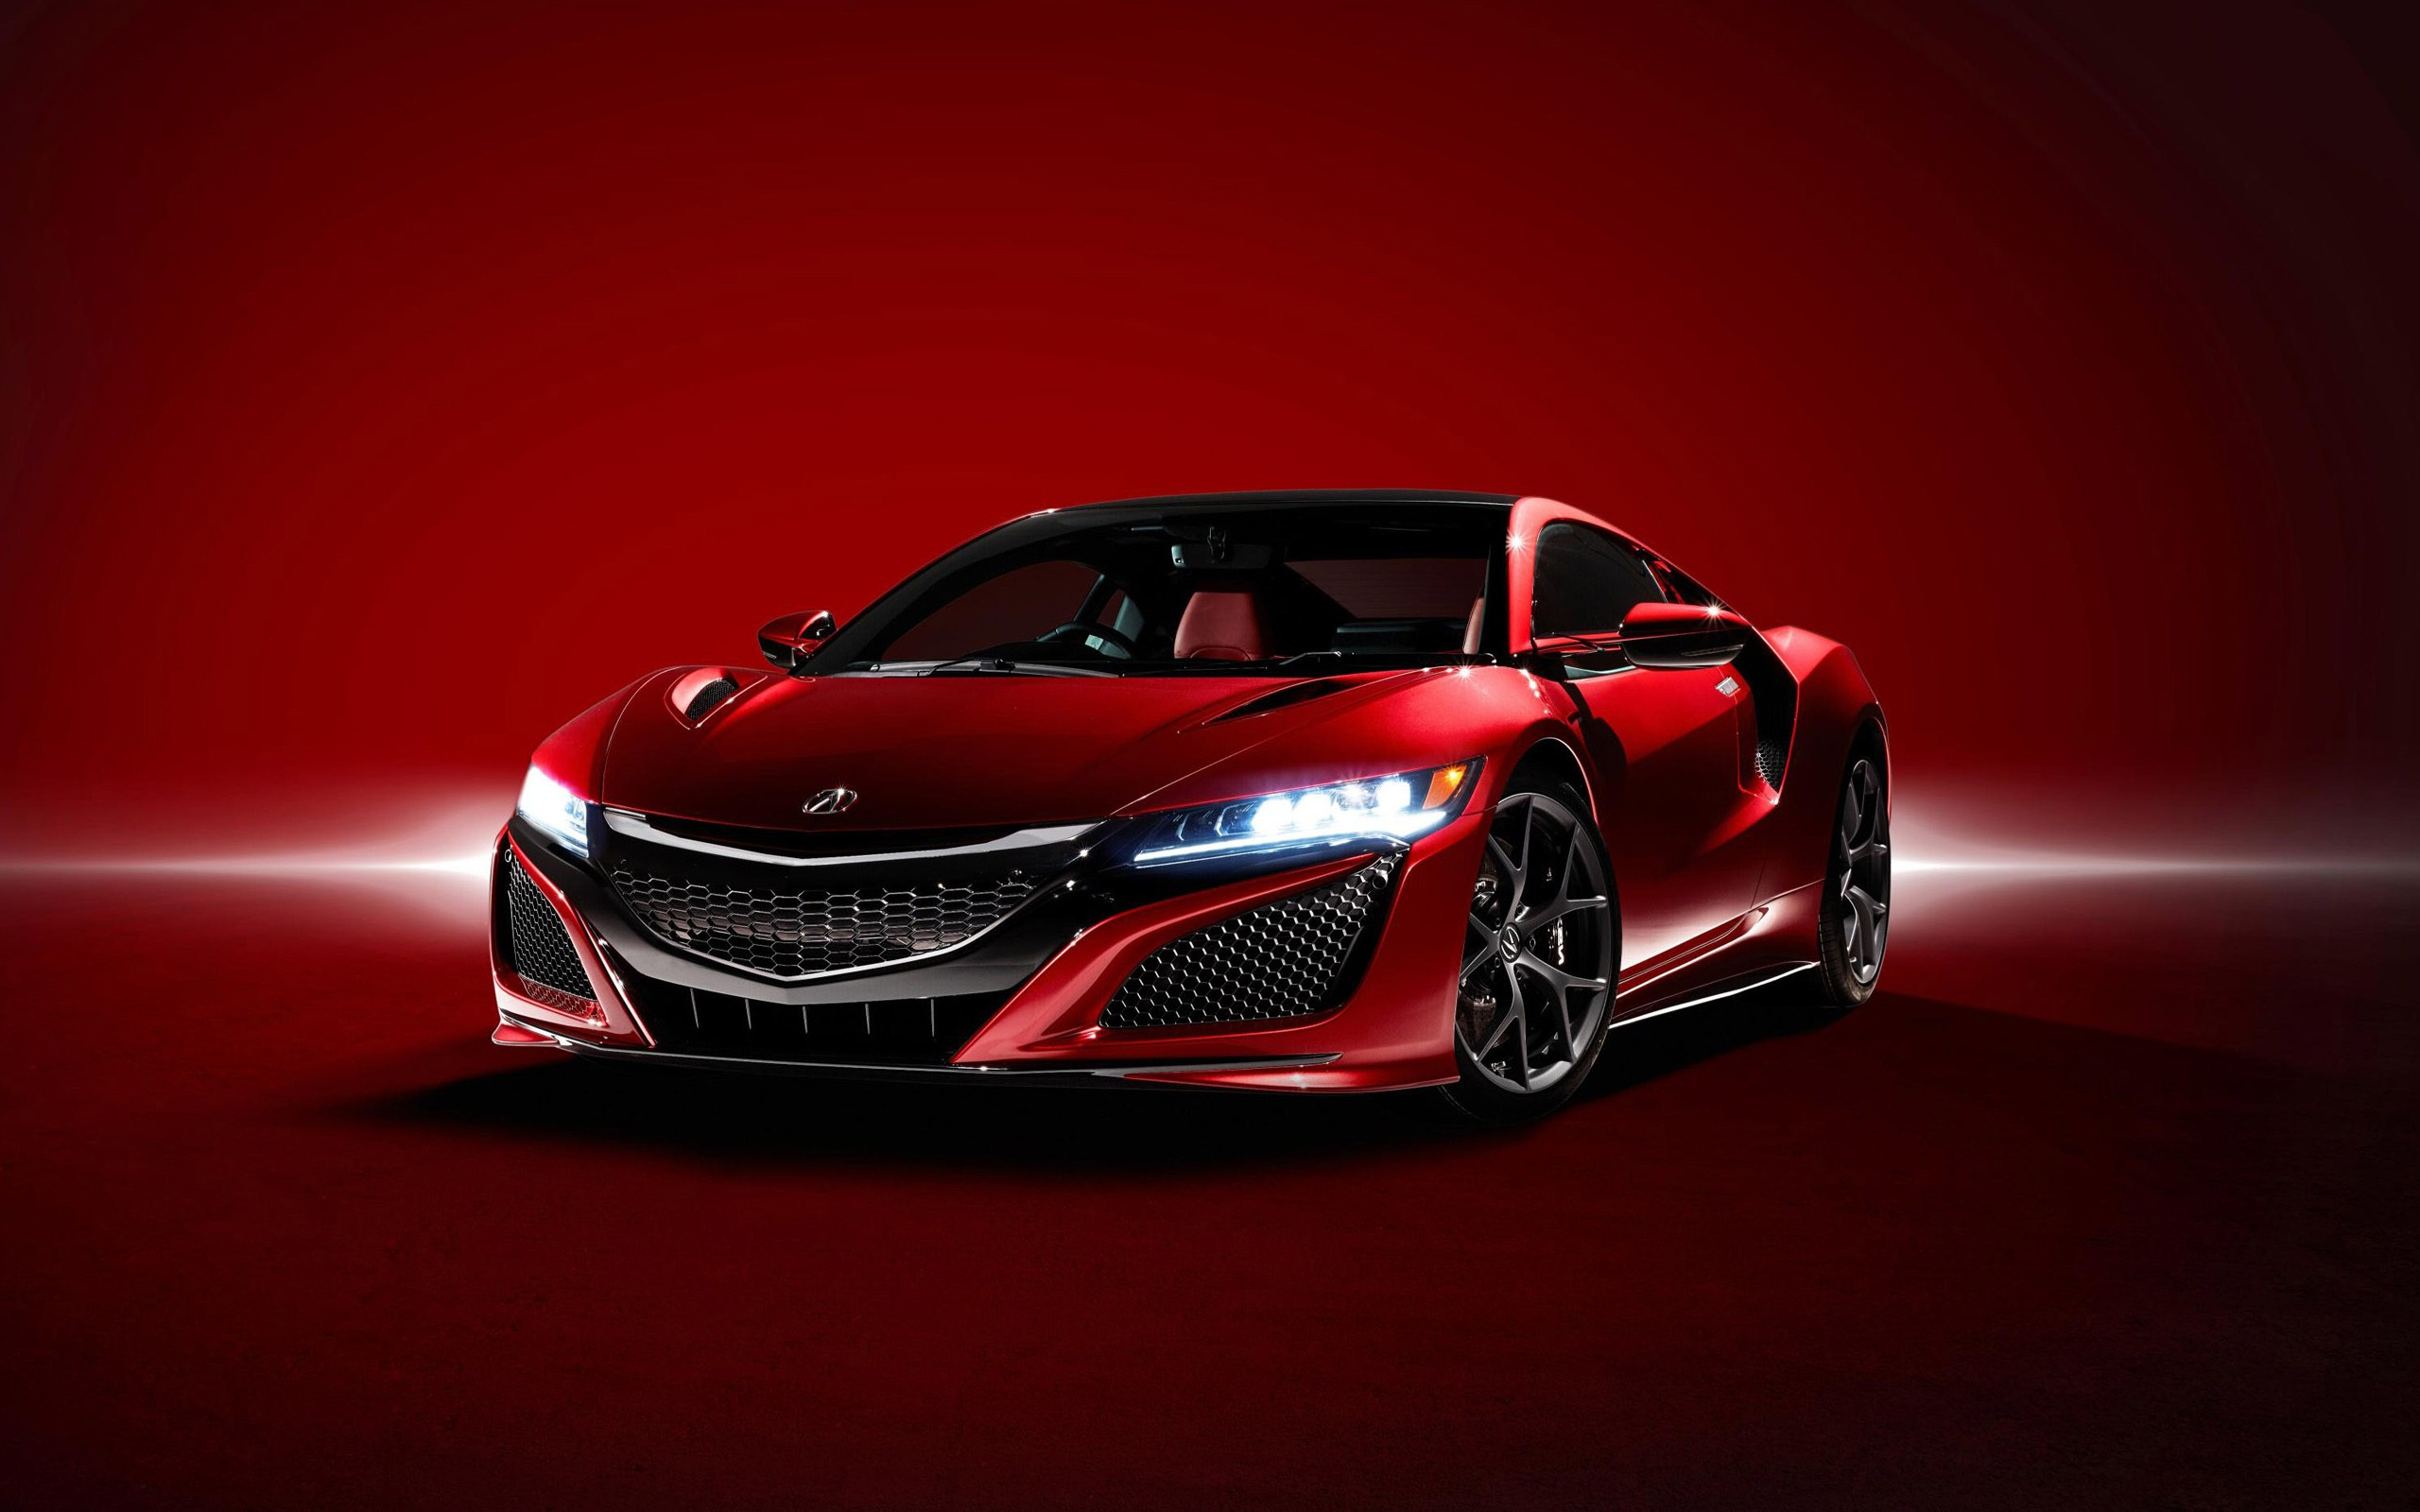 Acura nsx car hd cars 4k wallpapers images backgrounds - Wallpaper hd 4k car ...